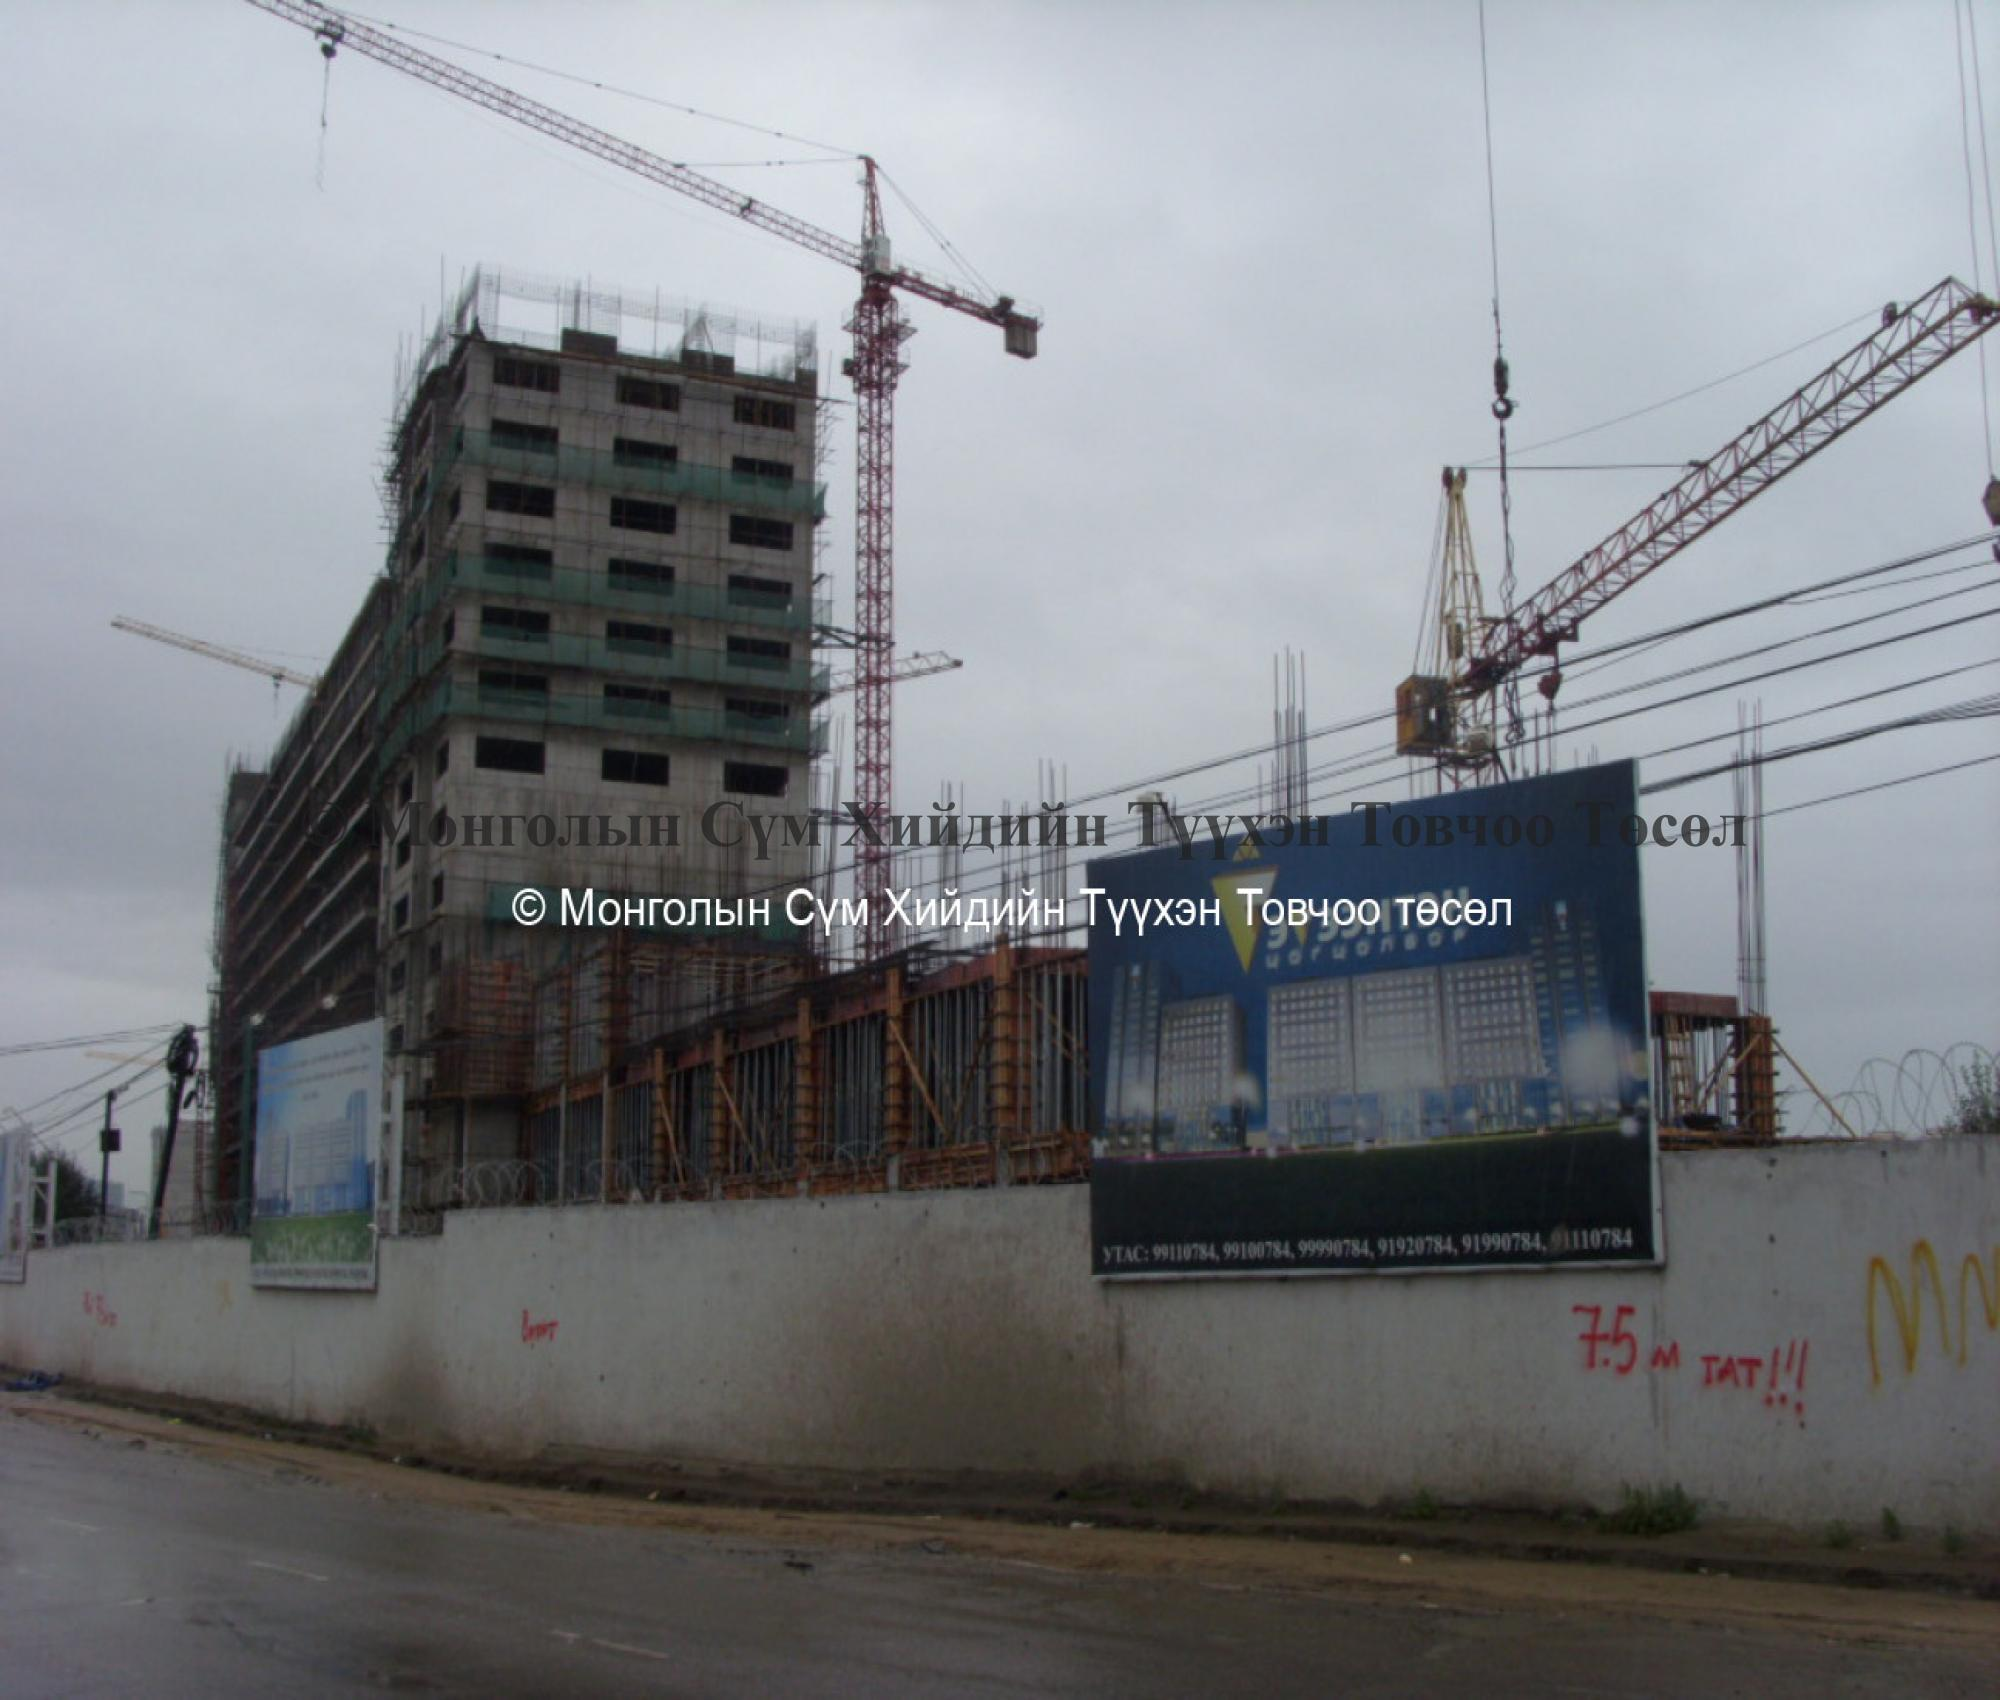 The new comlex being built on the site 2007